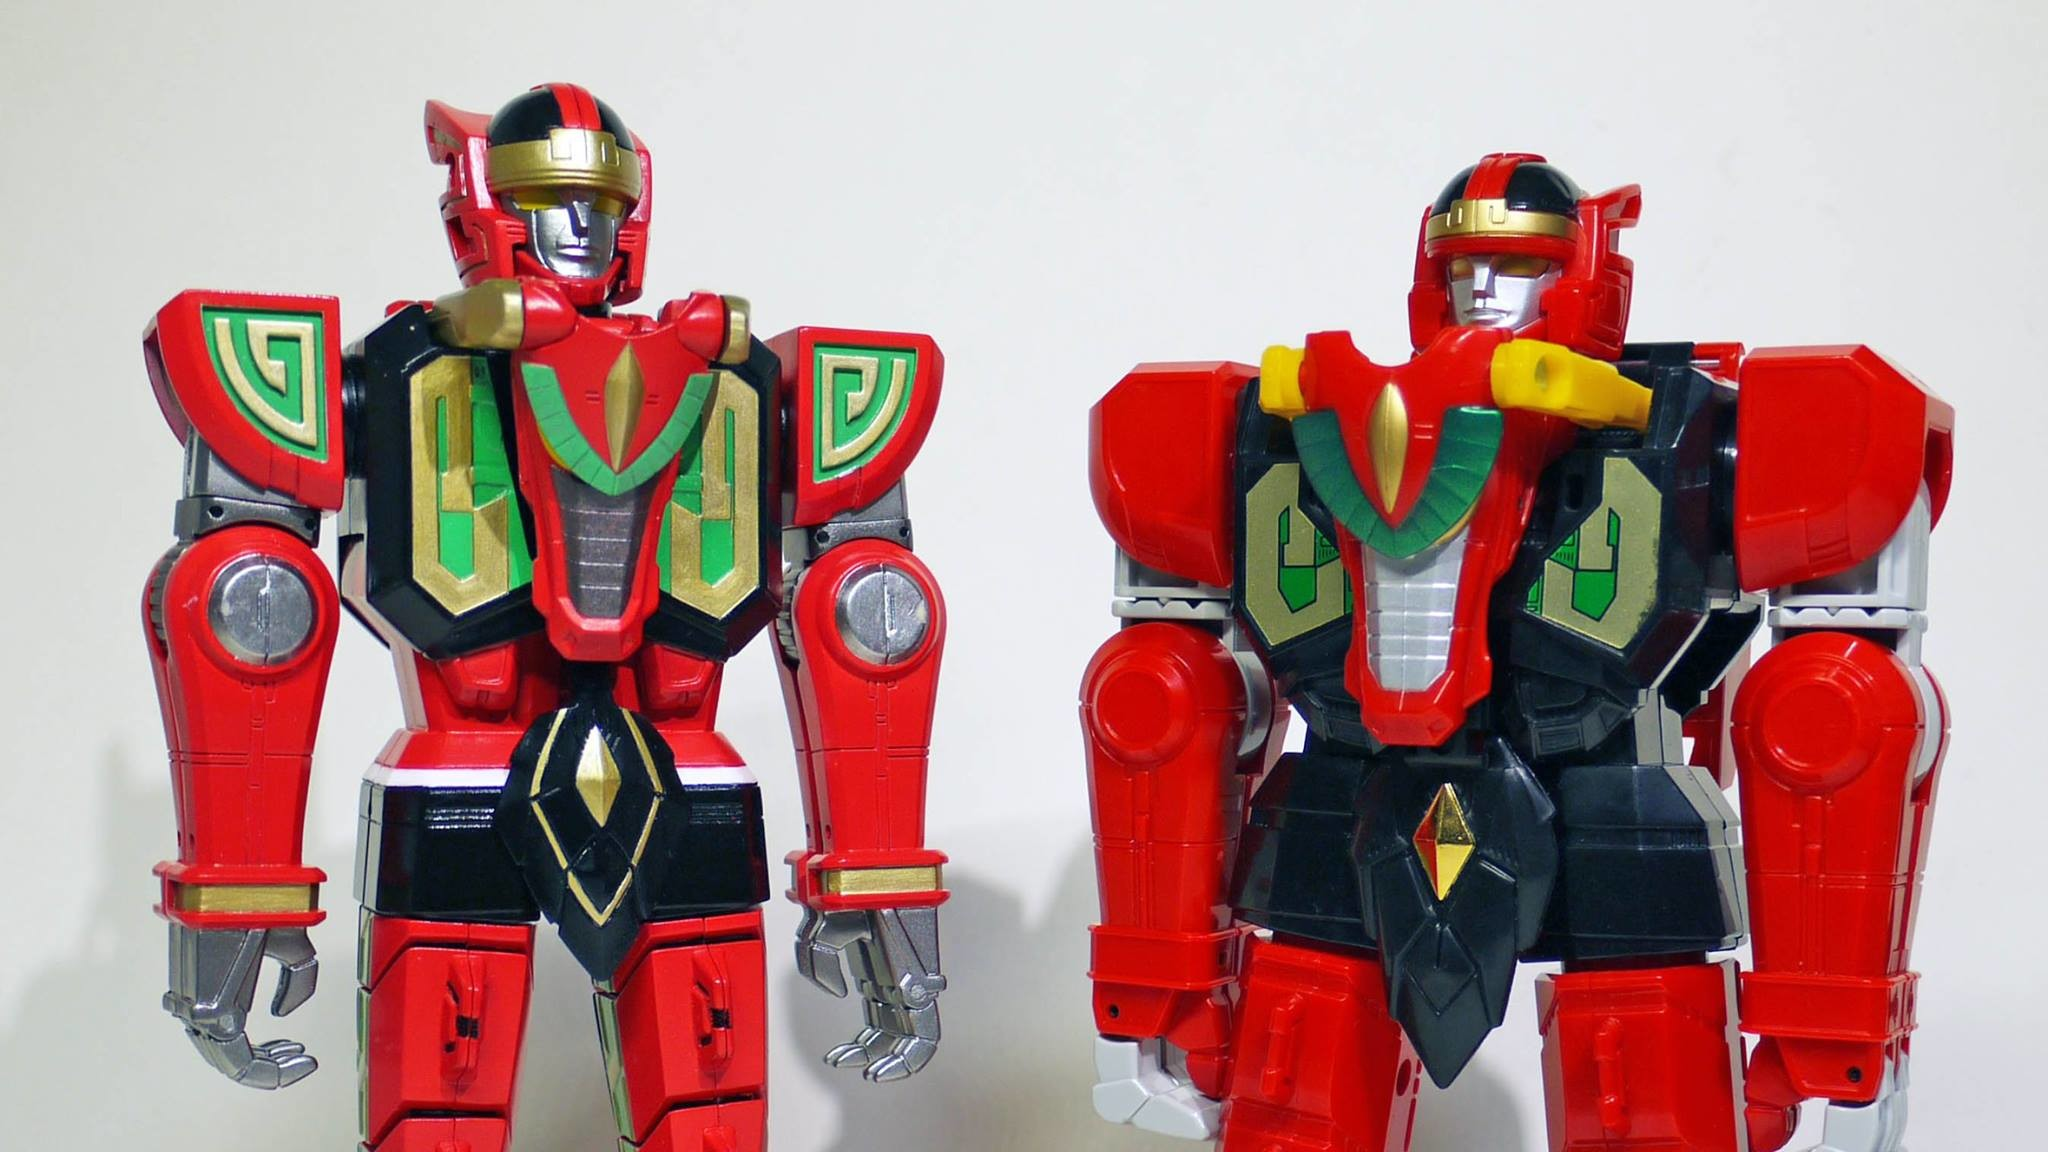 Tsuyoshi Nonaka Posts Photos of Power Rangers Legacy Toys